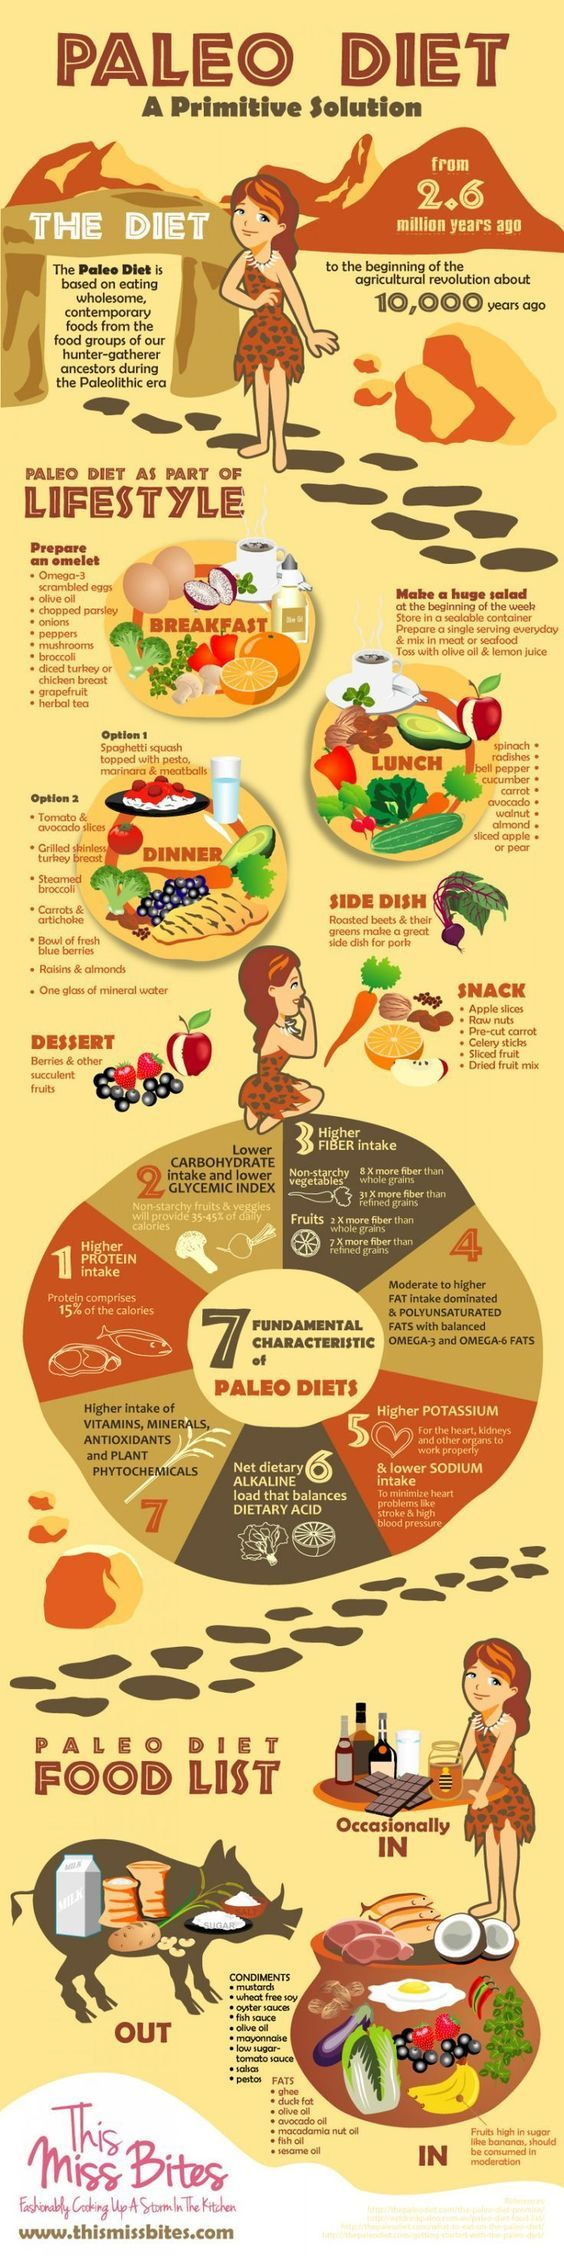 (22) https://paleo-diet-menu.blogspot.com/ #paleodiet weight loss camp, medical weight loss programs, how to lose weight in one week - ♥►◄♥ Paleo Diet P… | Pinterest